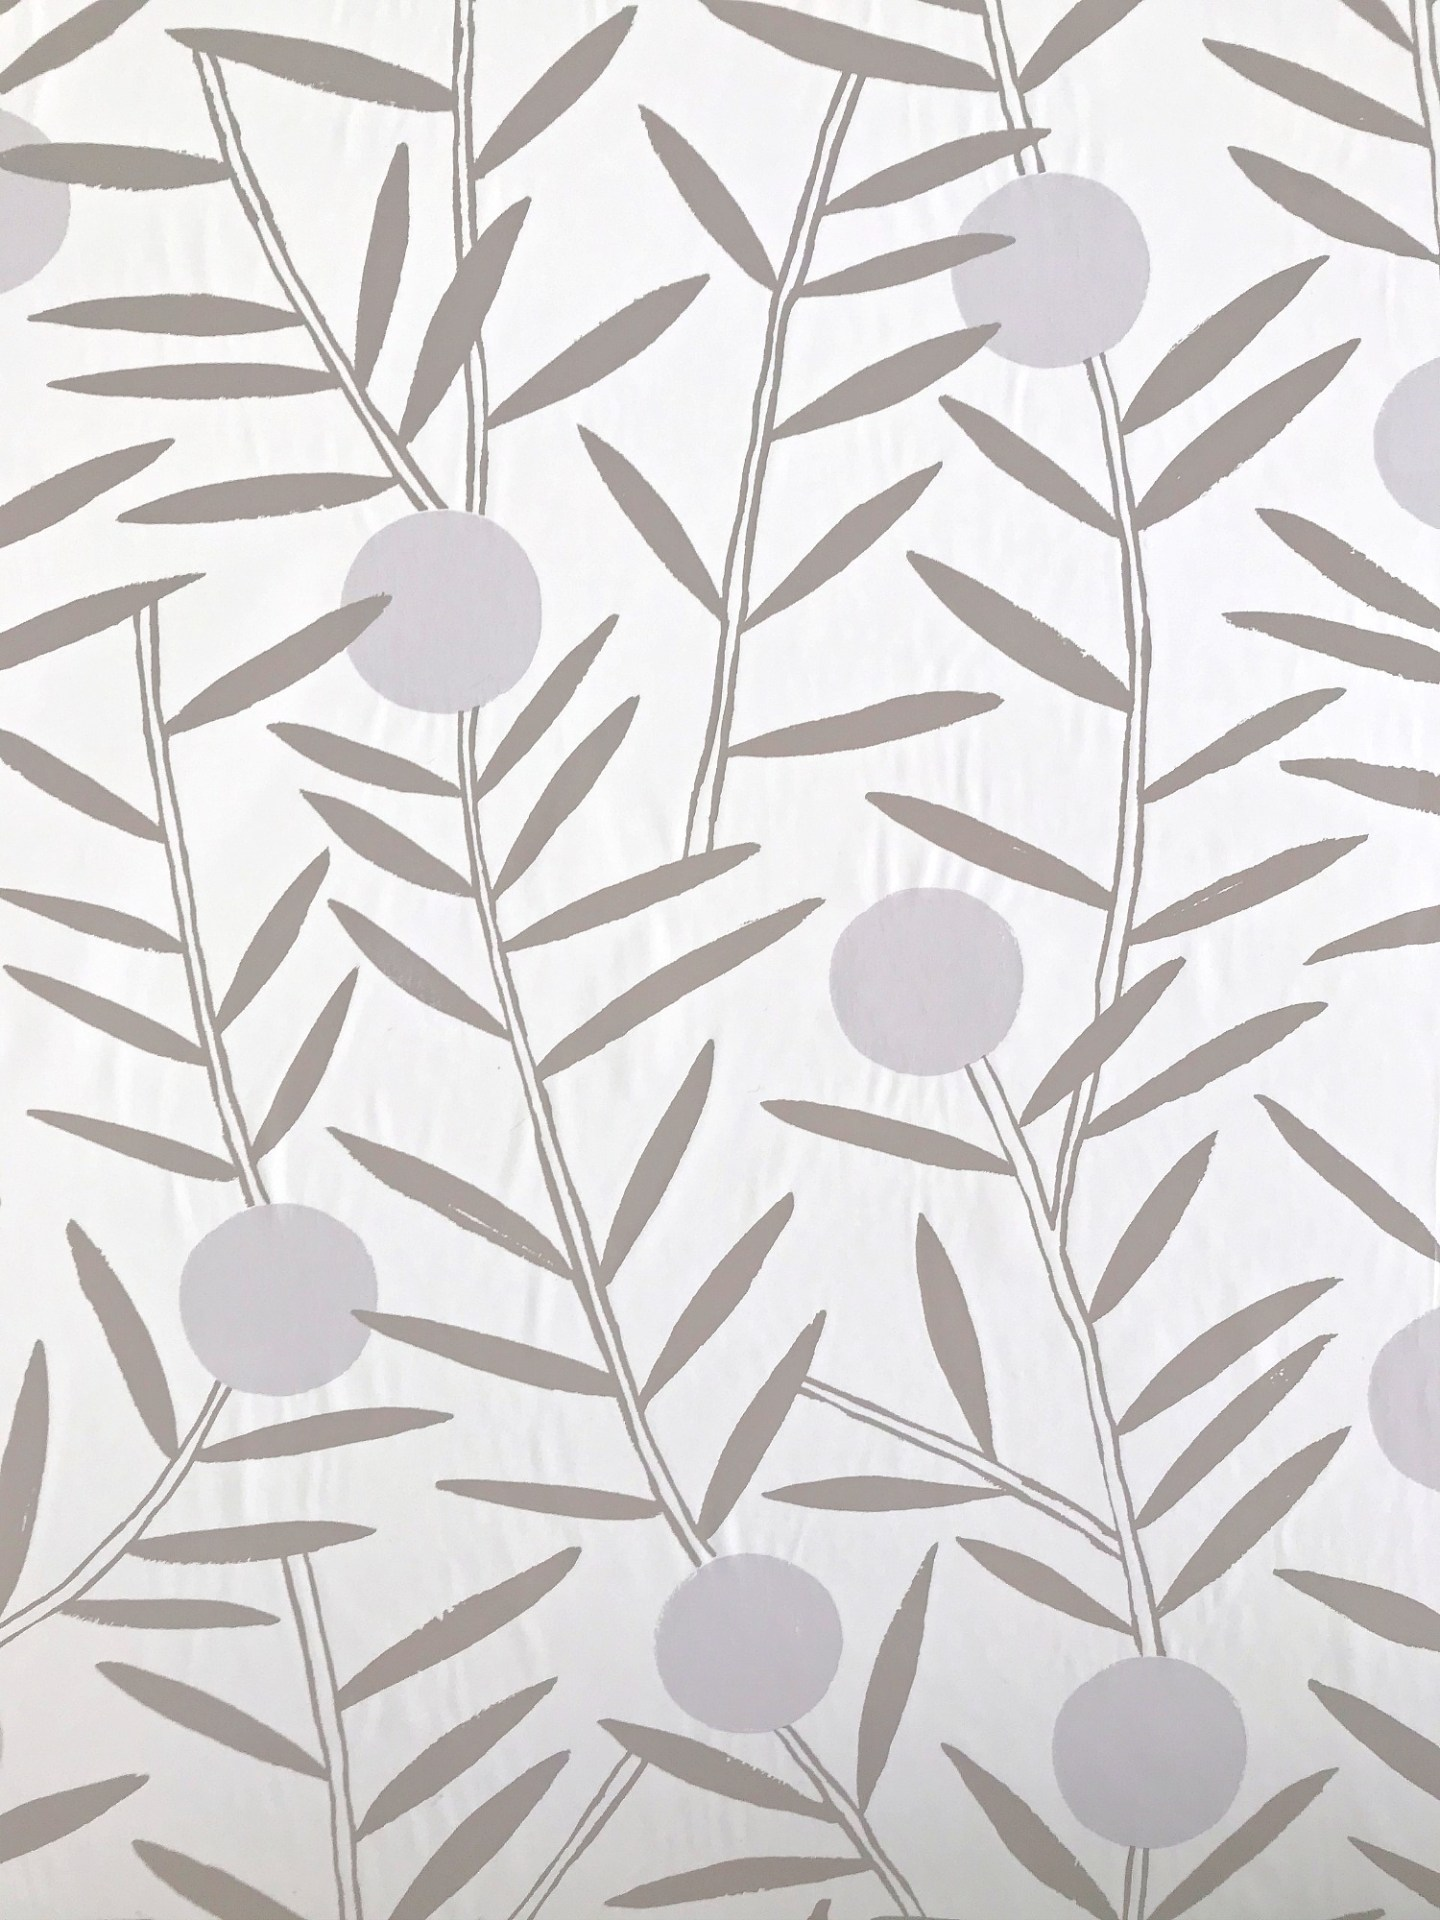 How to Smooth Wallpaper Wrinkles